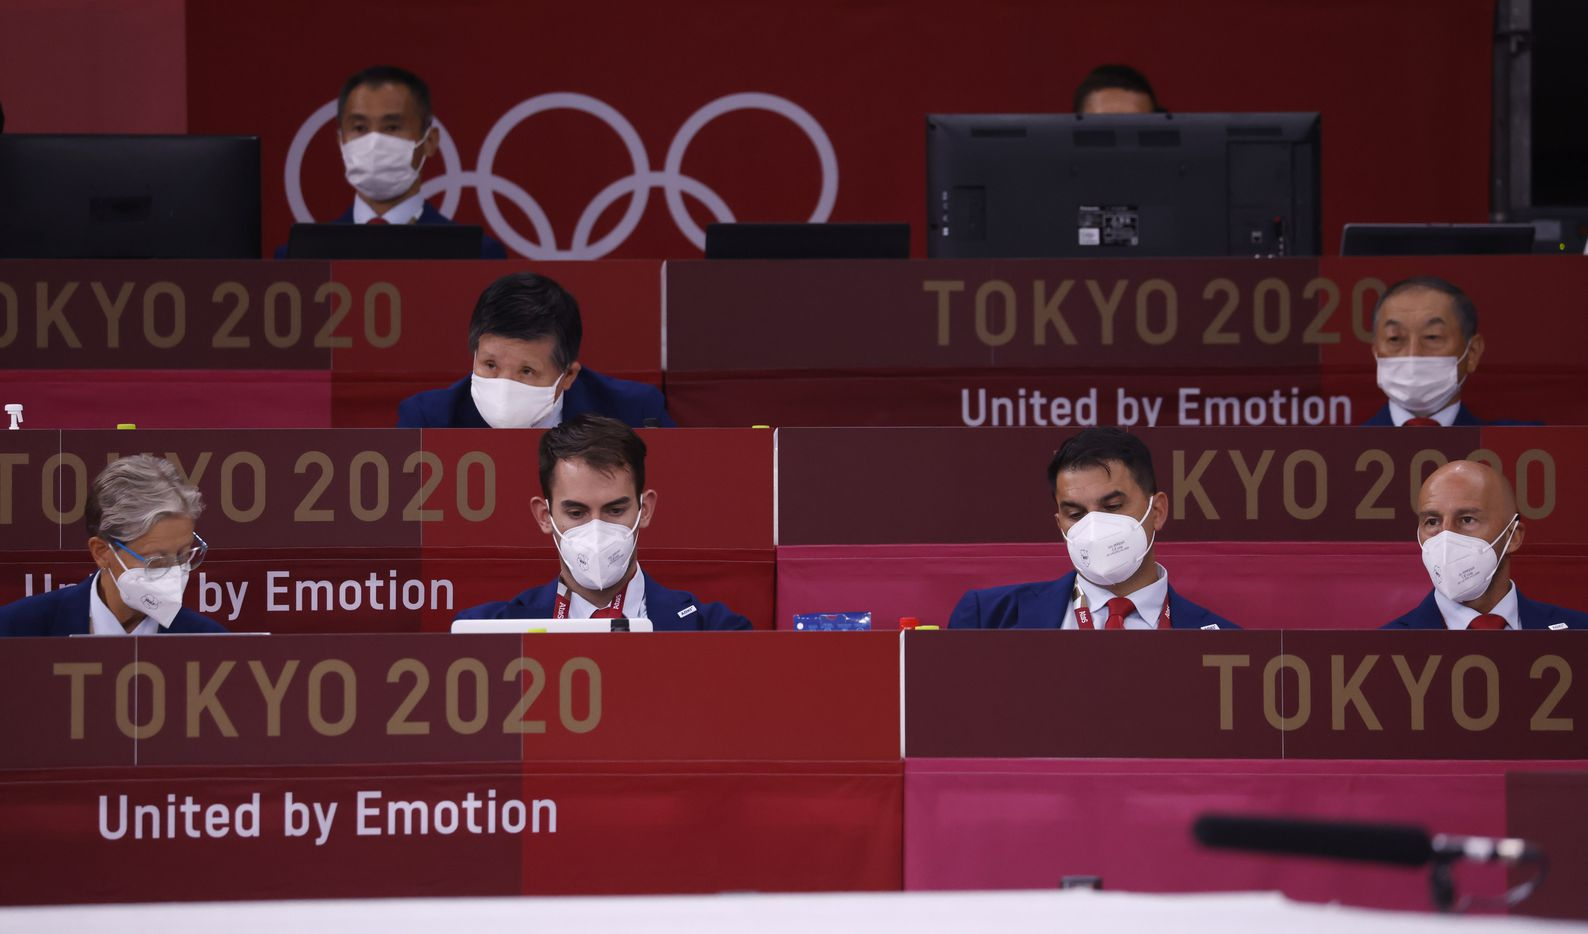 Masked officials look over the bouts during the karate men's kumite -75kg elimination round at the postponed 2020 Tokyo Olympics at Nippon Budokan, on Friday, August 6, 2021, in Tokyo, Japan. (Vernon Bryant/The Dallas Morning News)